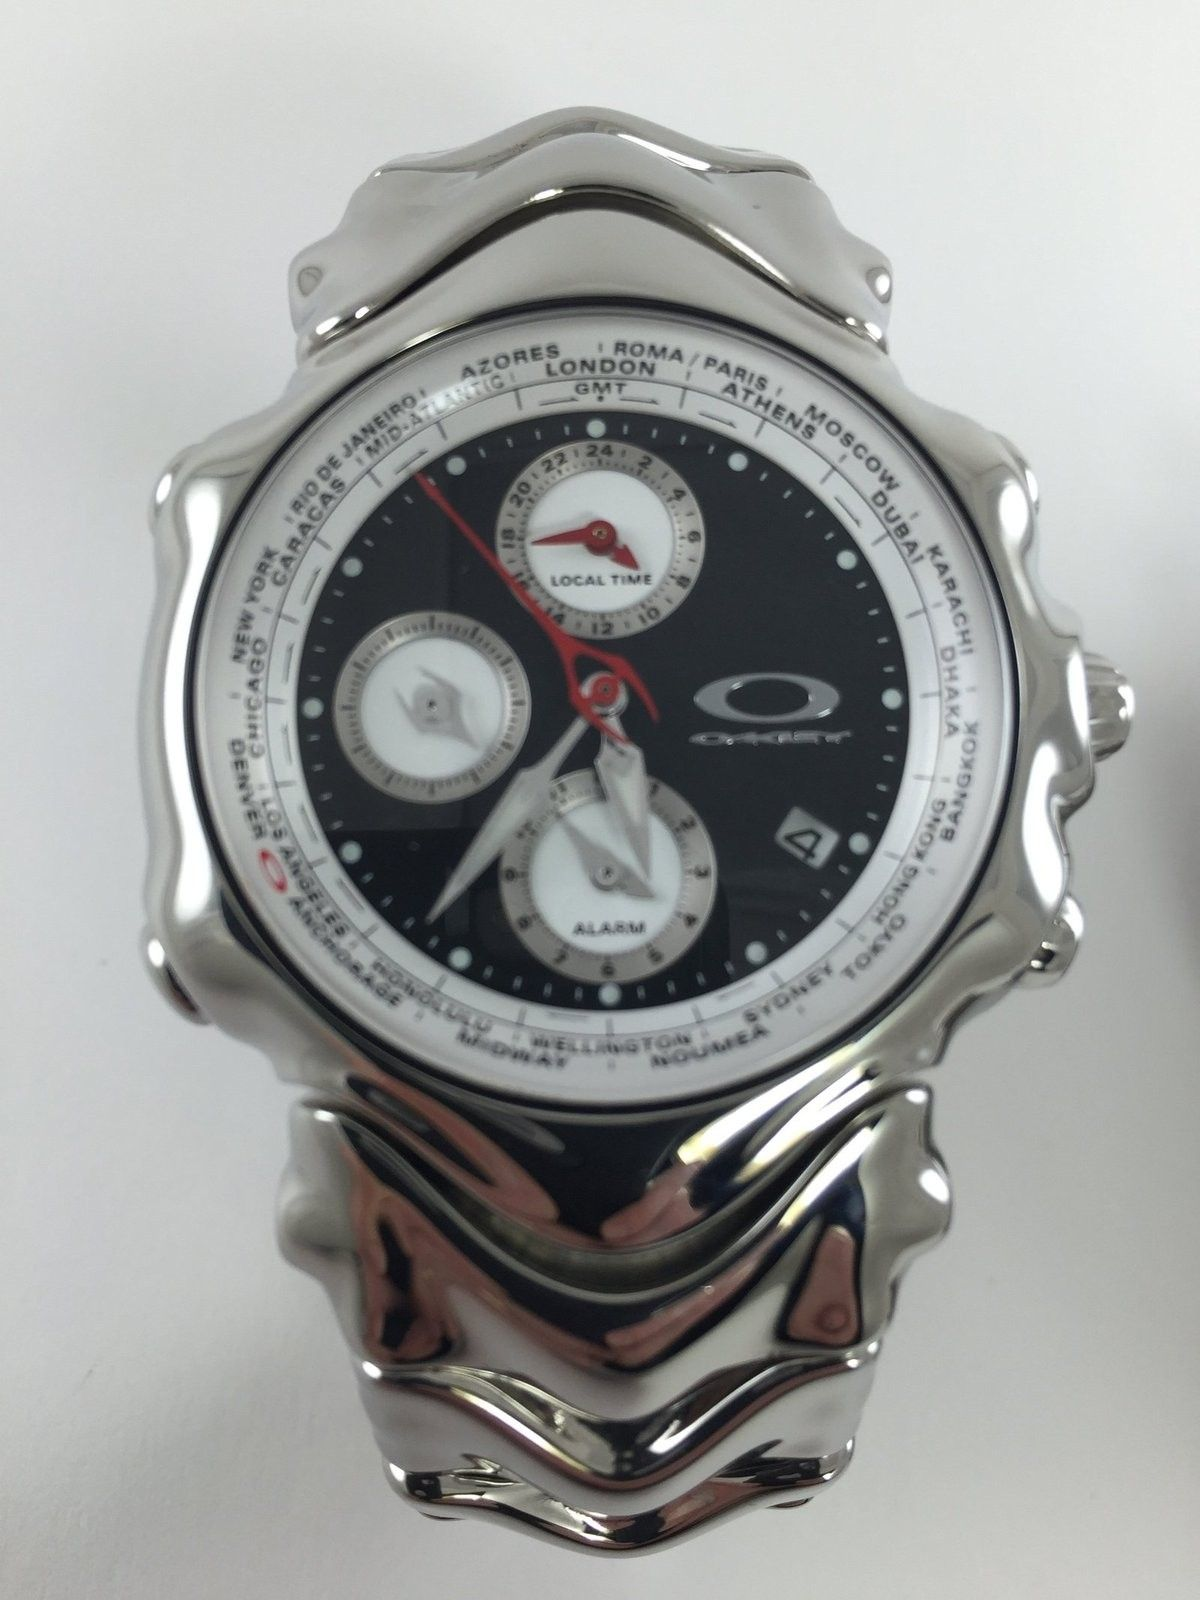 Hollow Point & GMT Watch - 15710811991_deb3892b20_o.jpg